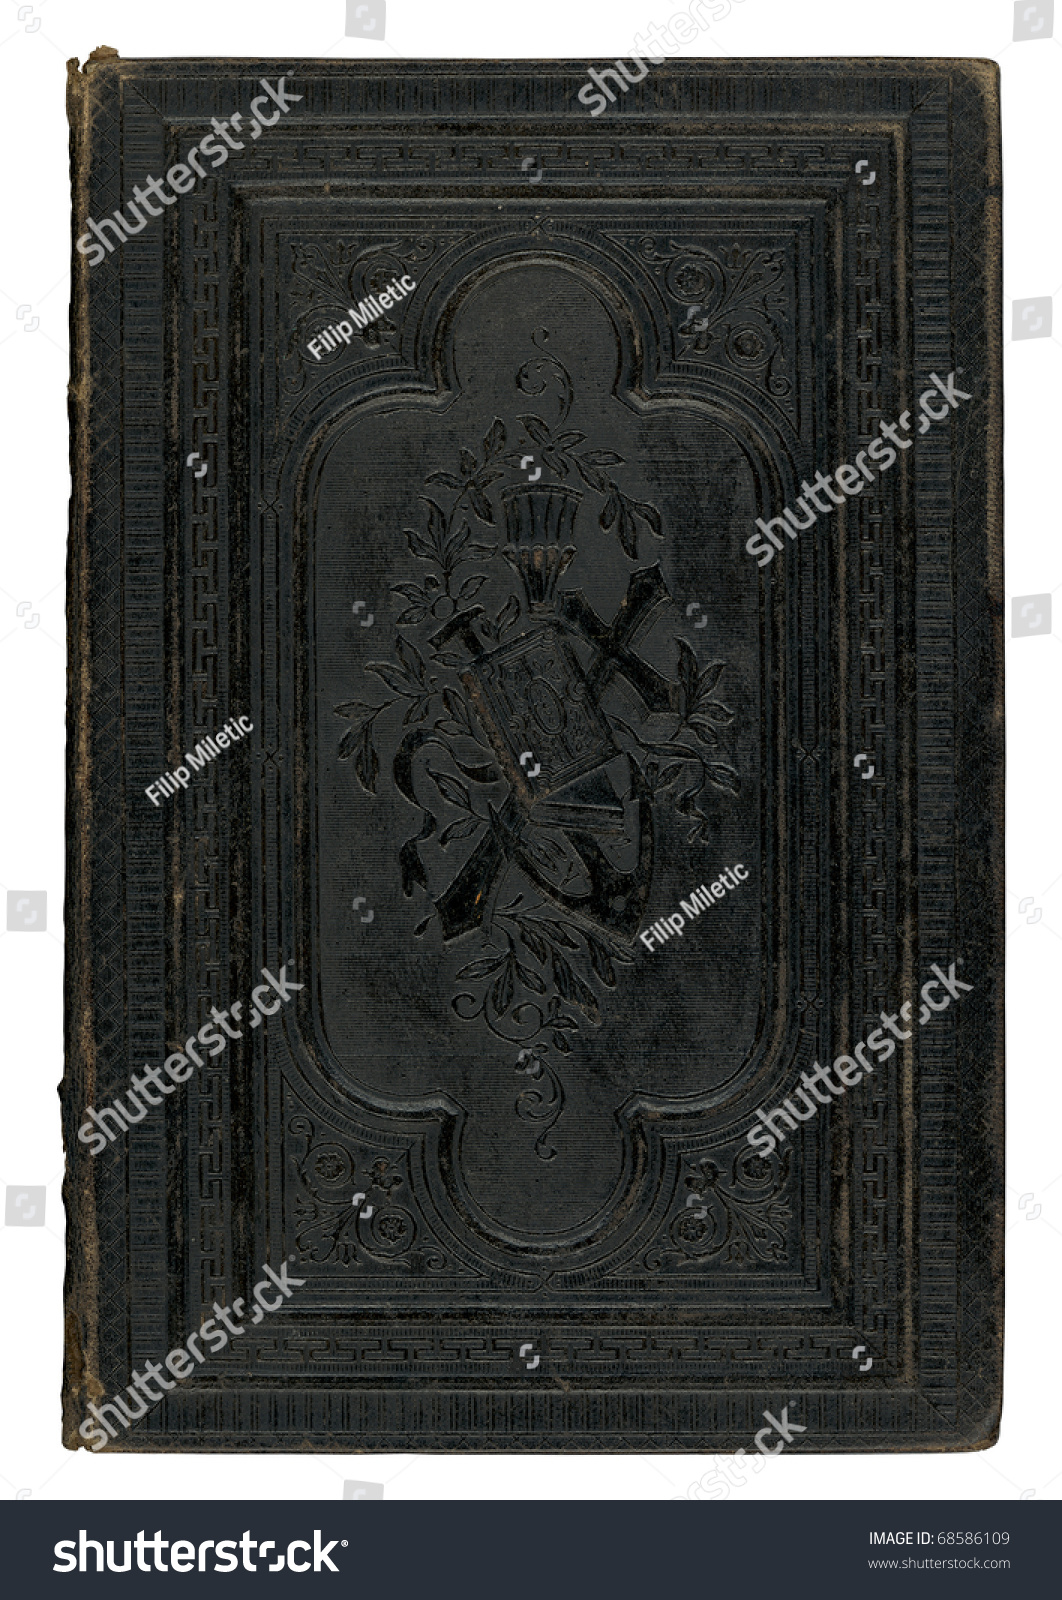 Black Leather Book Cover : Vintage black leather book cover isolated on white